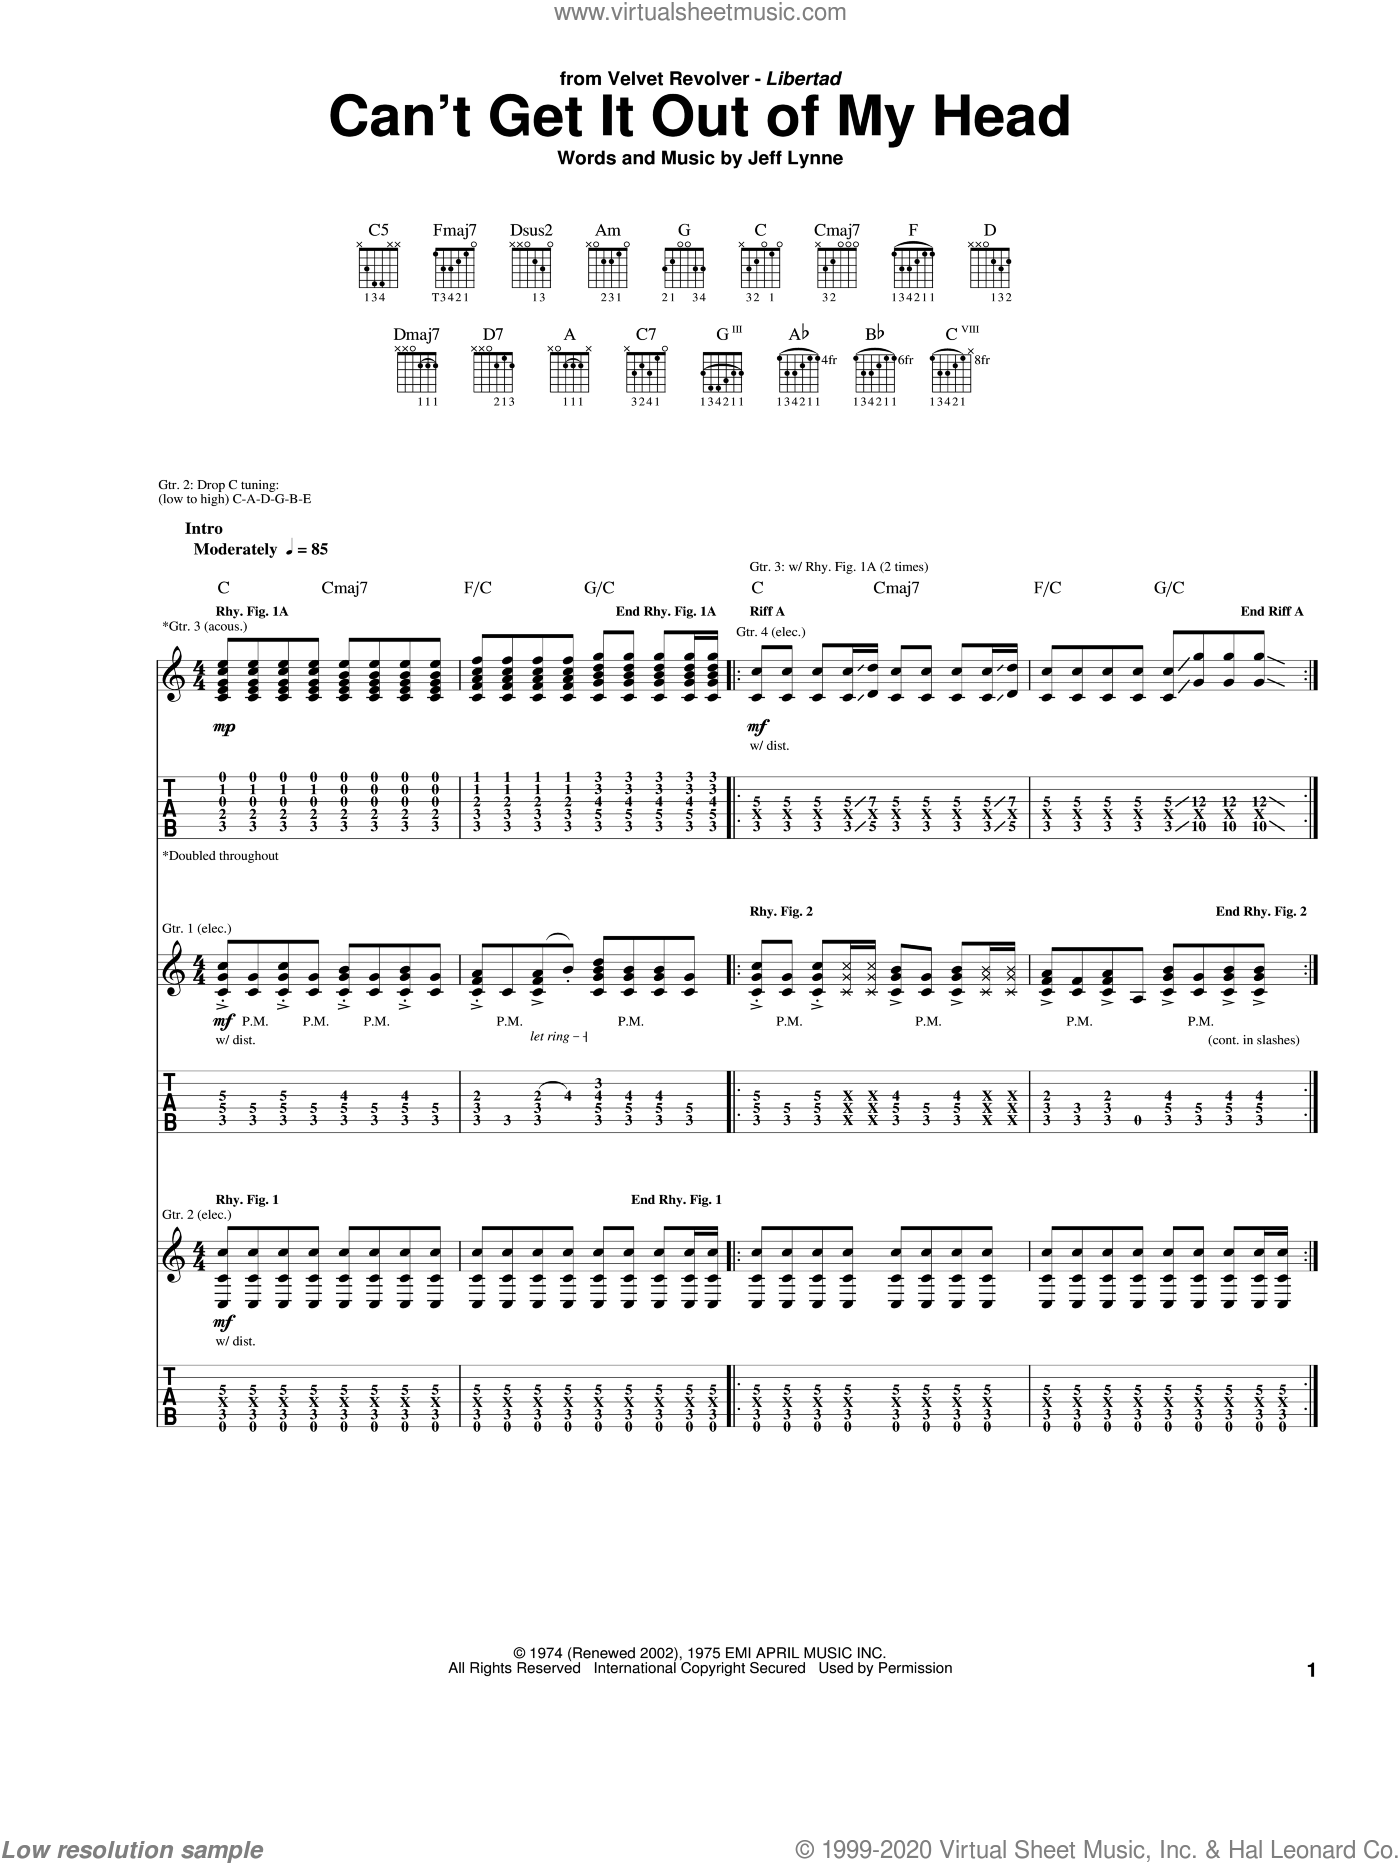 Can't Get It Out Of My Head sheet music for guitar (tablature) by Jeff Lynne. Score Image Preview.